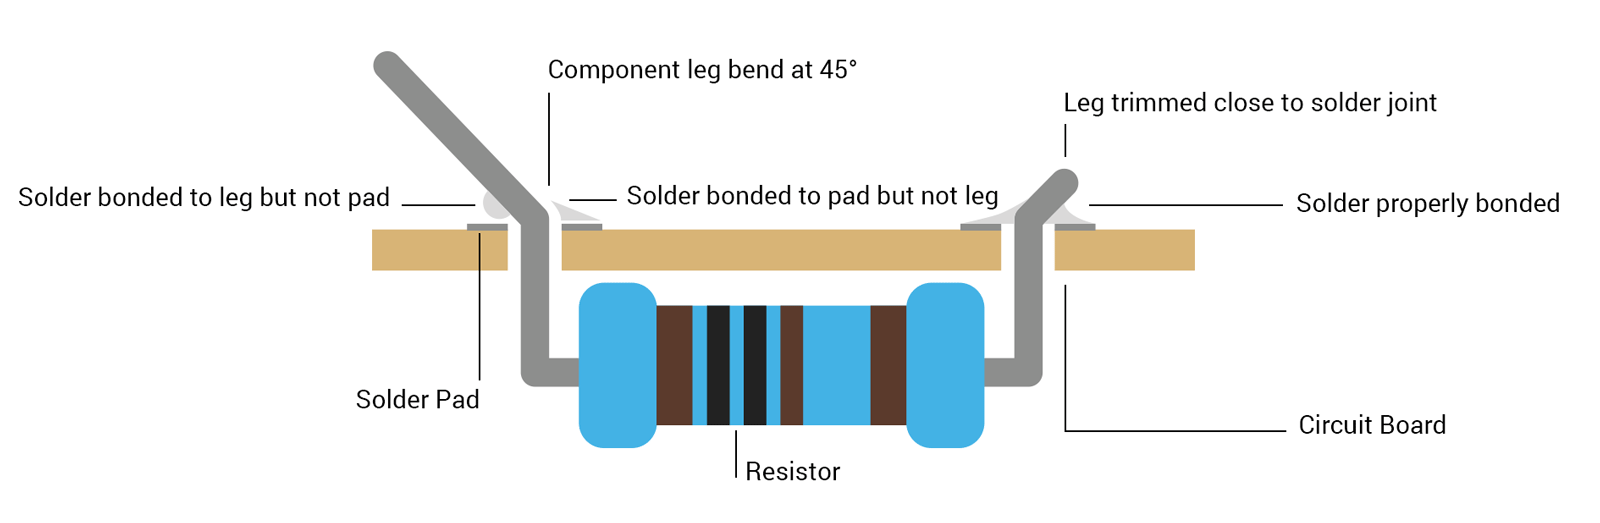 Resistor soldered to circuit board